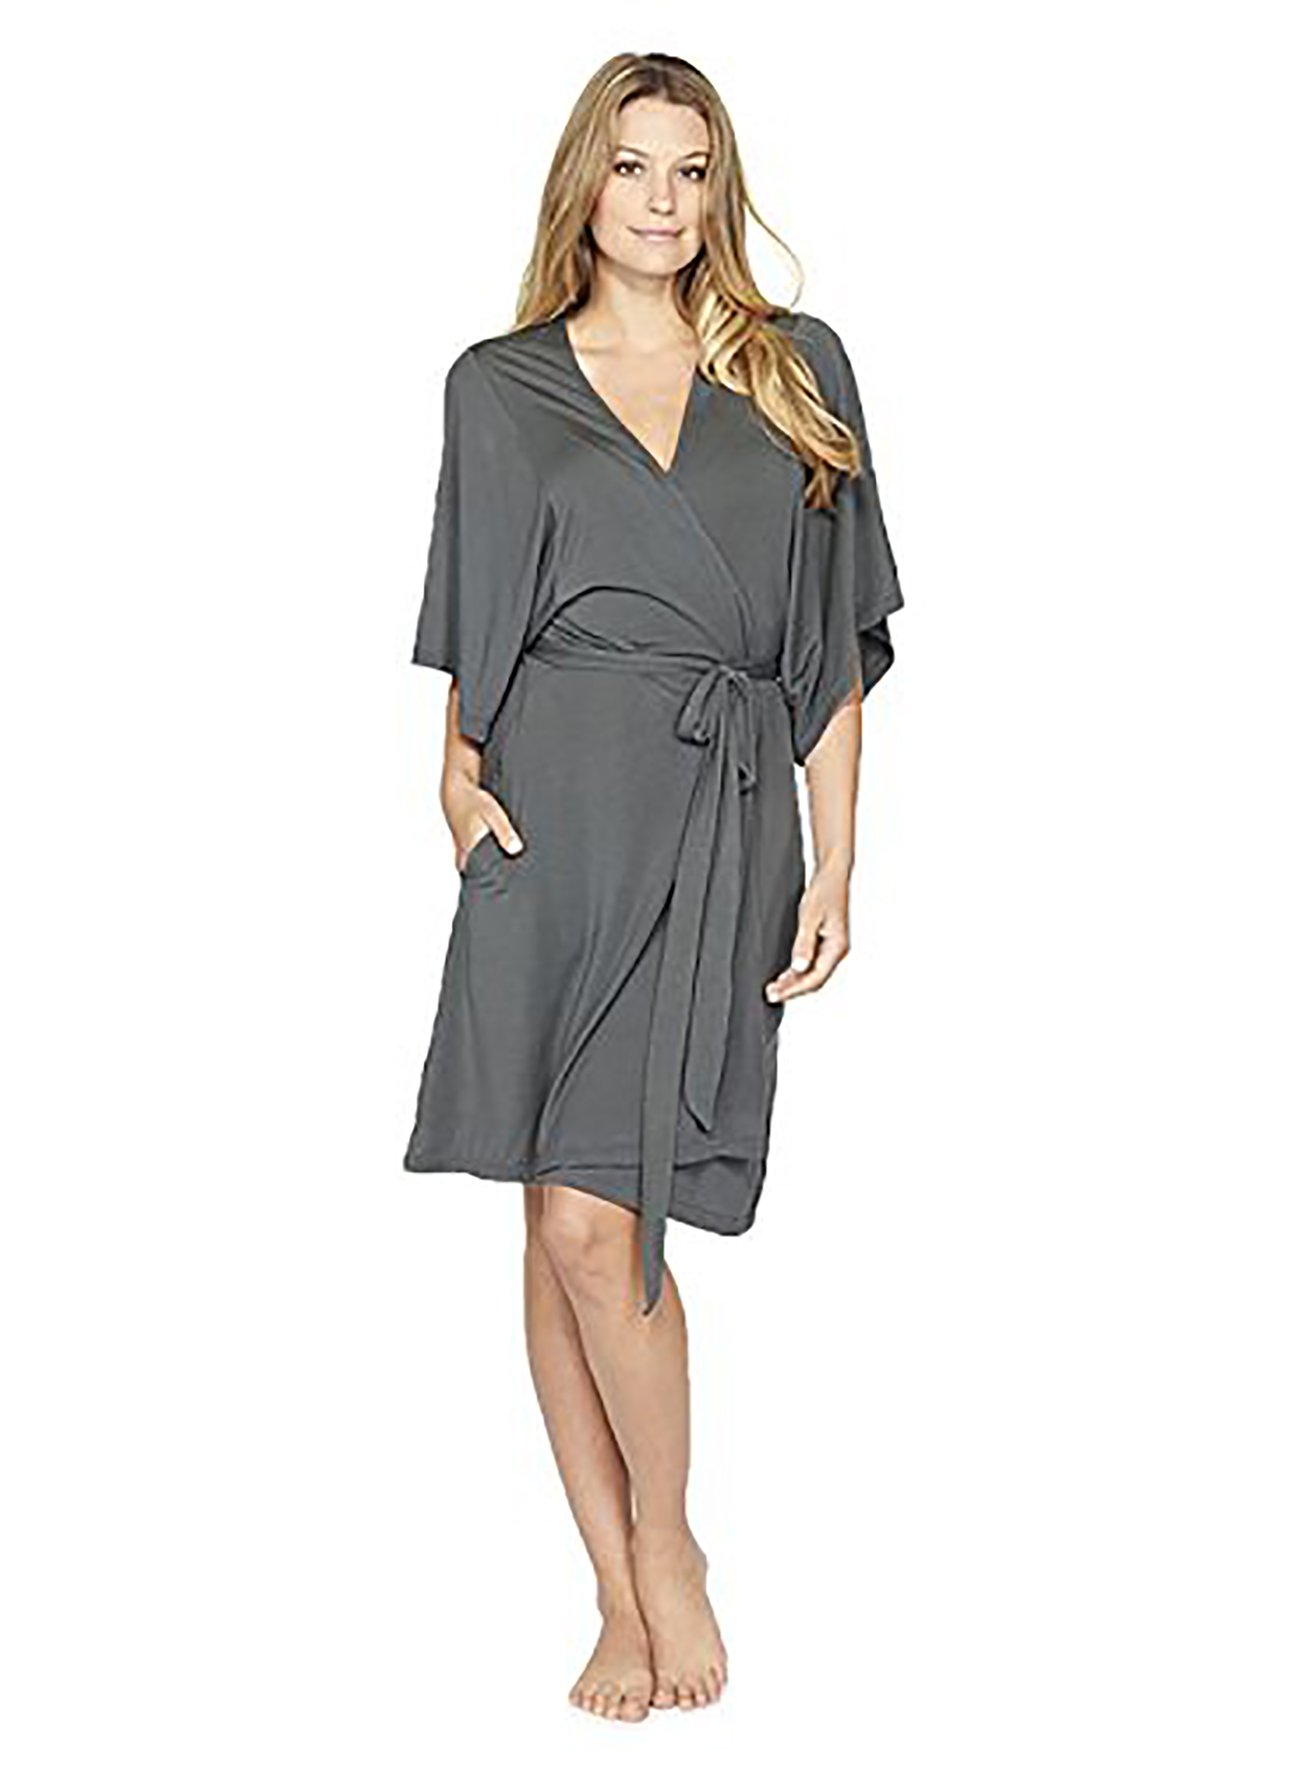 Barefoot Dreams Luxe Milk Jersey Short Robe - Graphite, Large by Barefoot Dreams